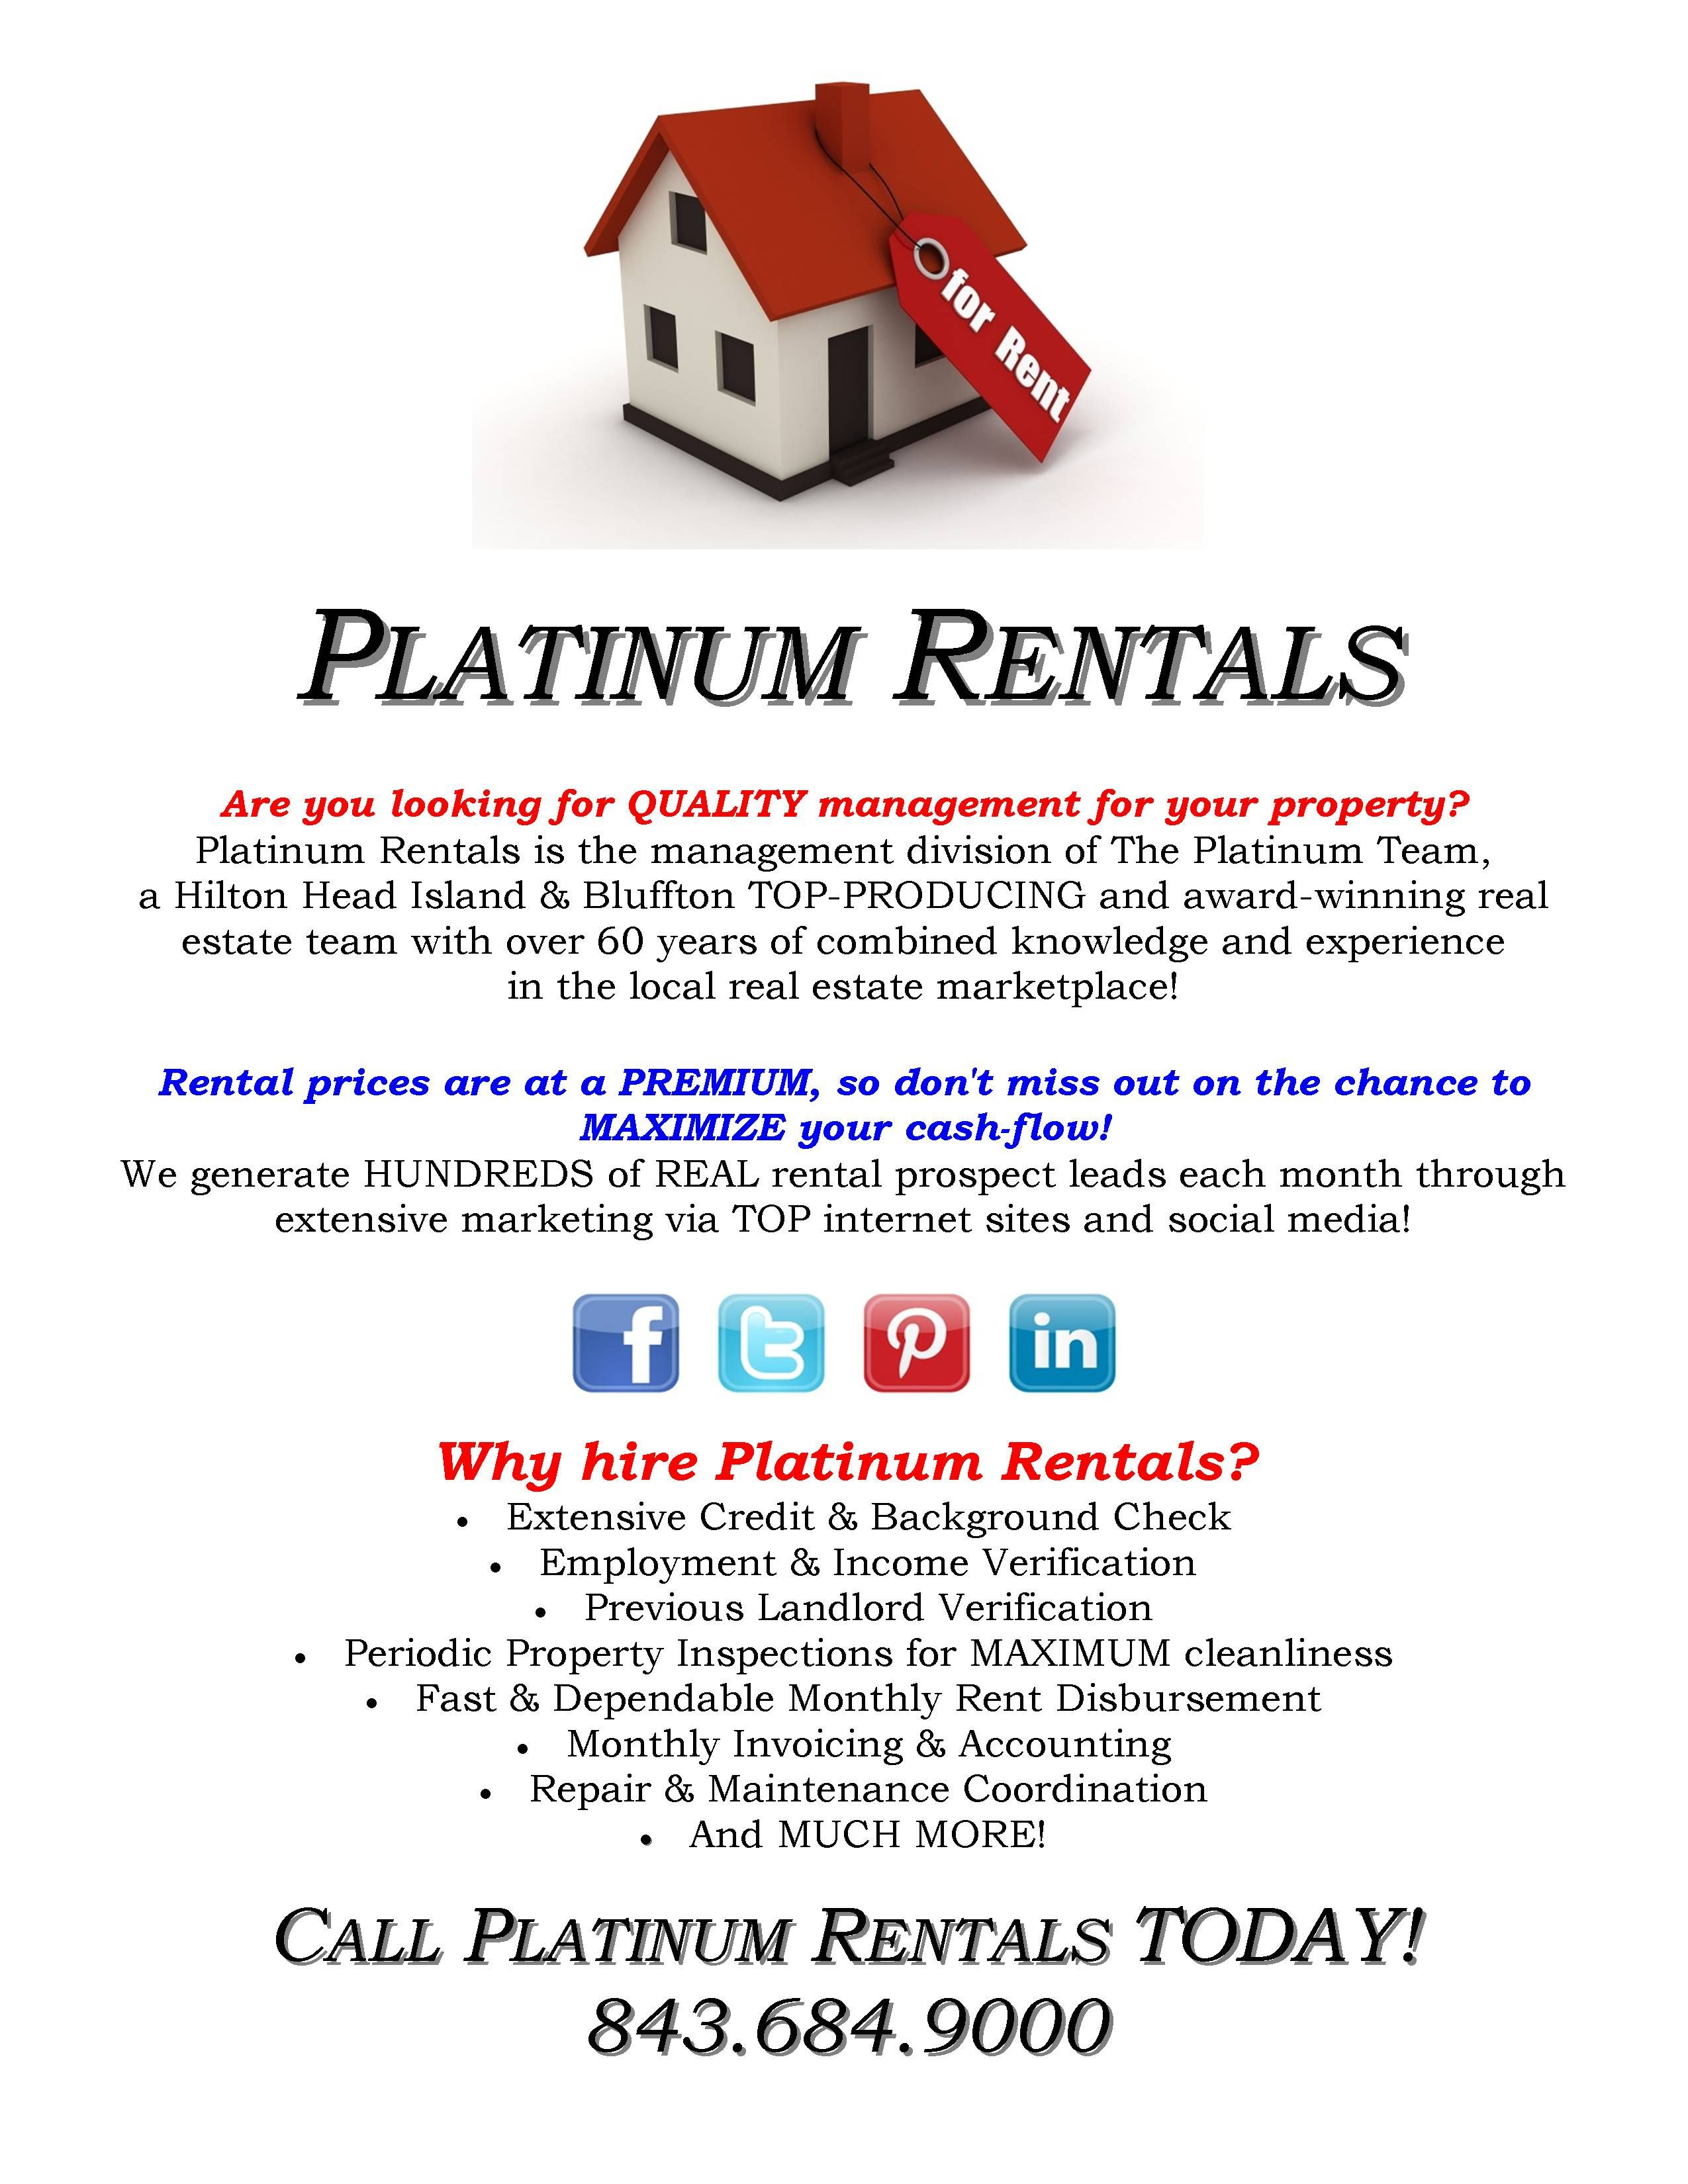 Platinum Rentals, Hilton Head Island & Bluffton's Choice For Rental  Management And Tenant Placement.